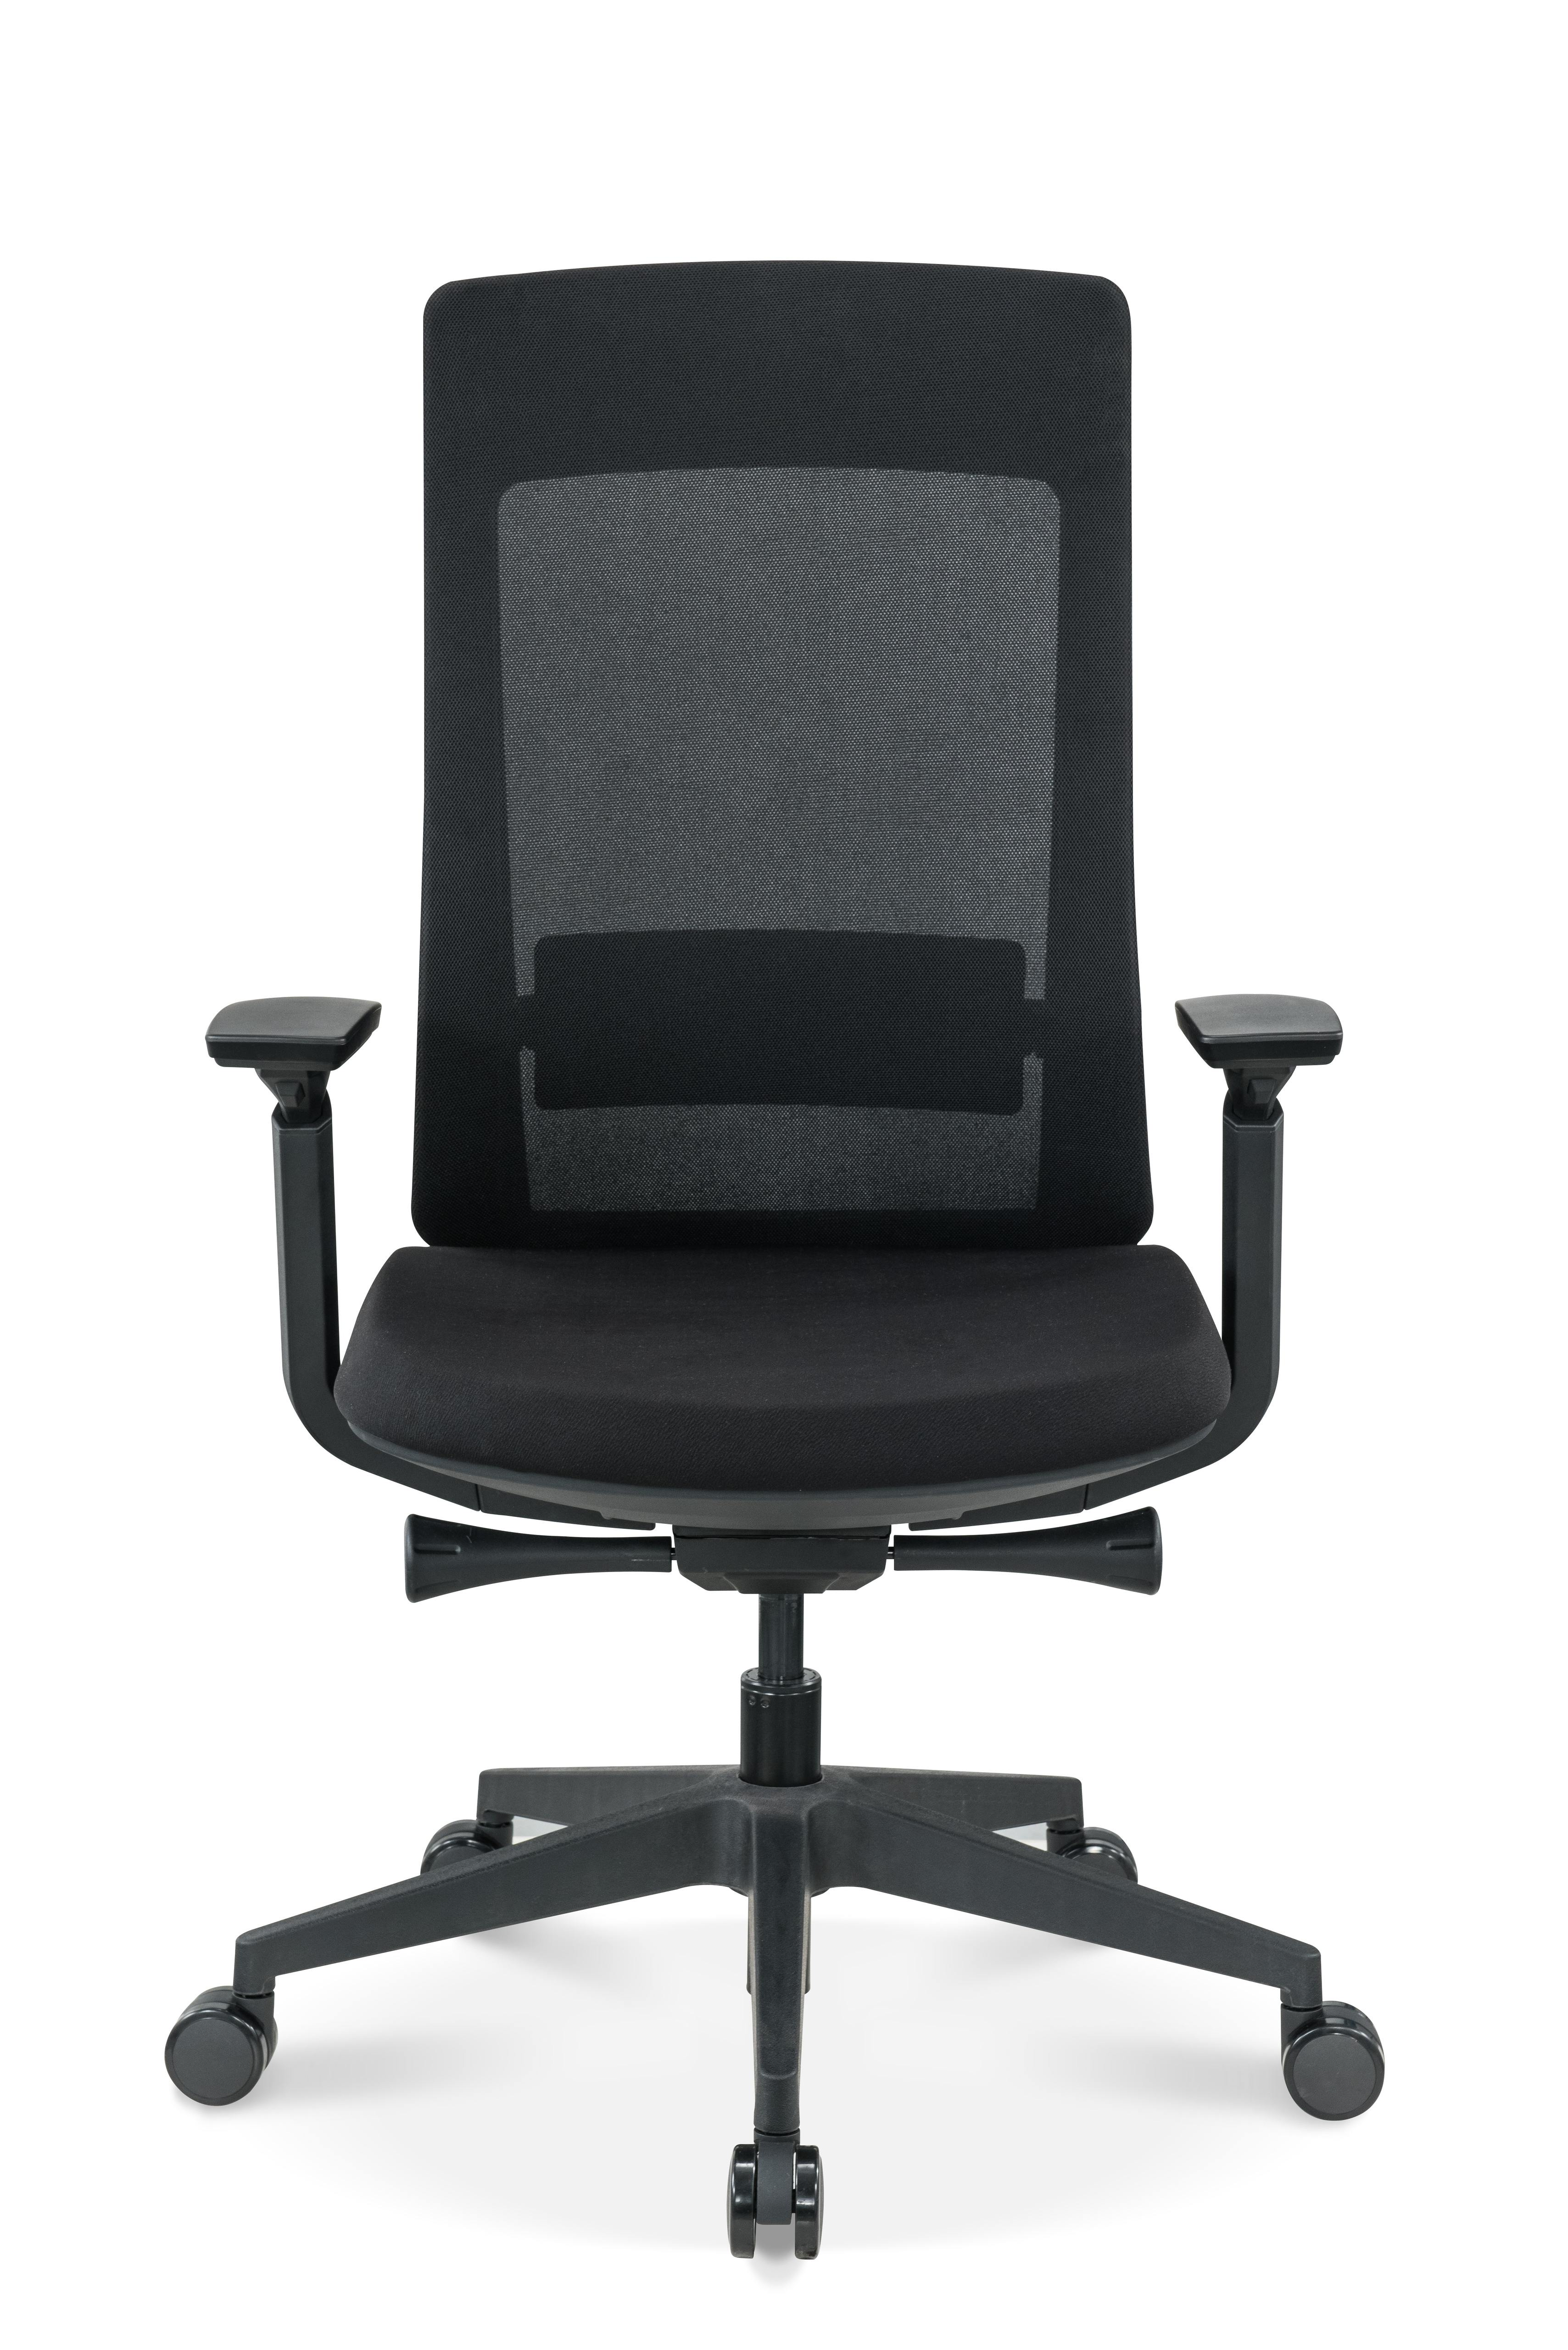 elevate mesh chair